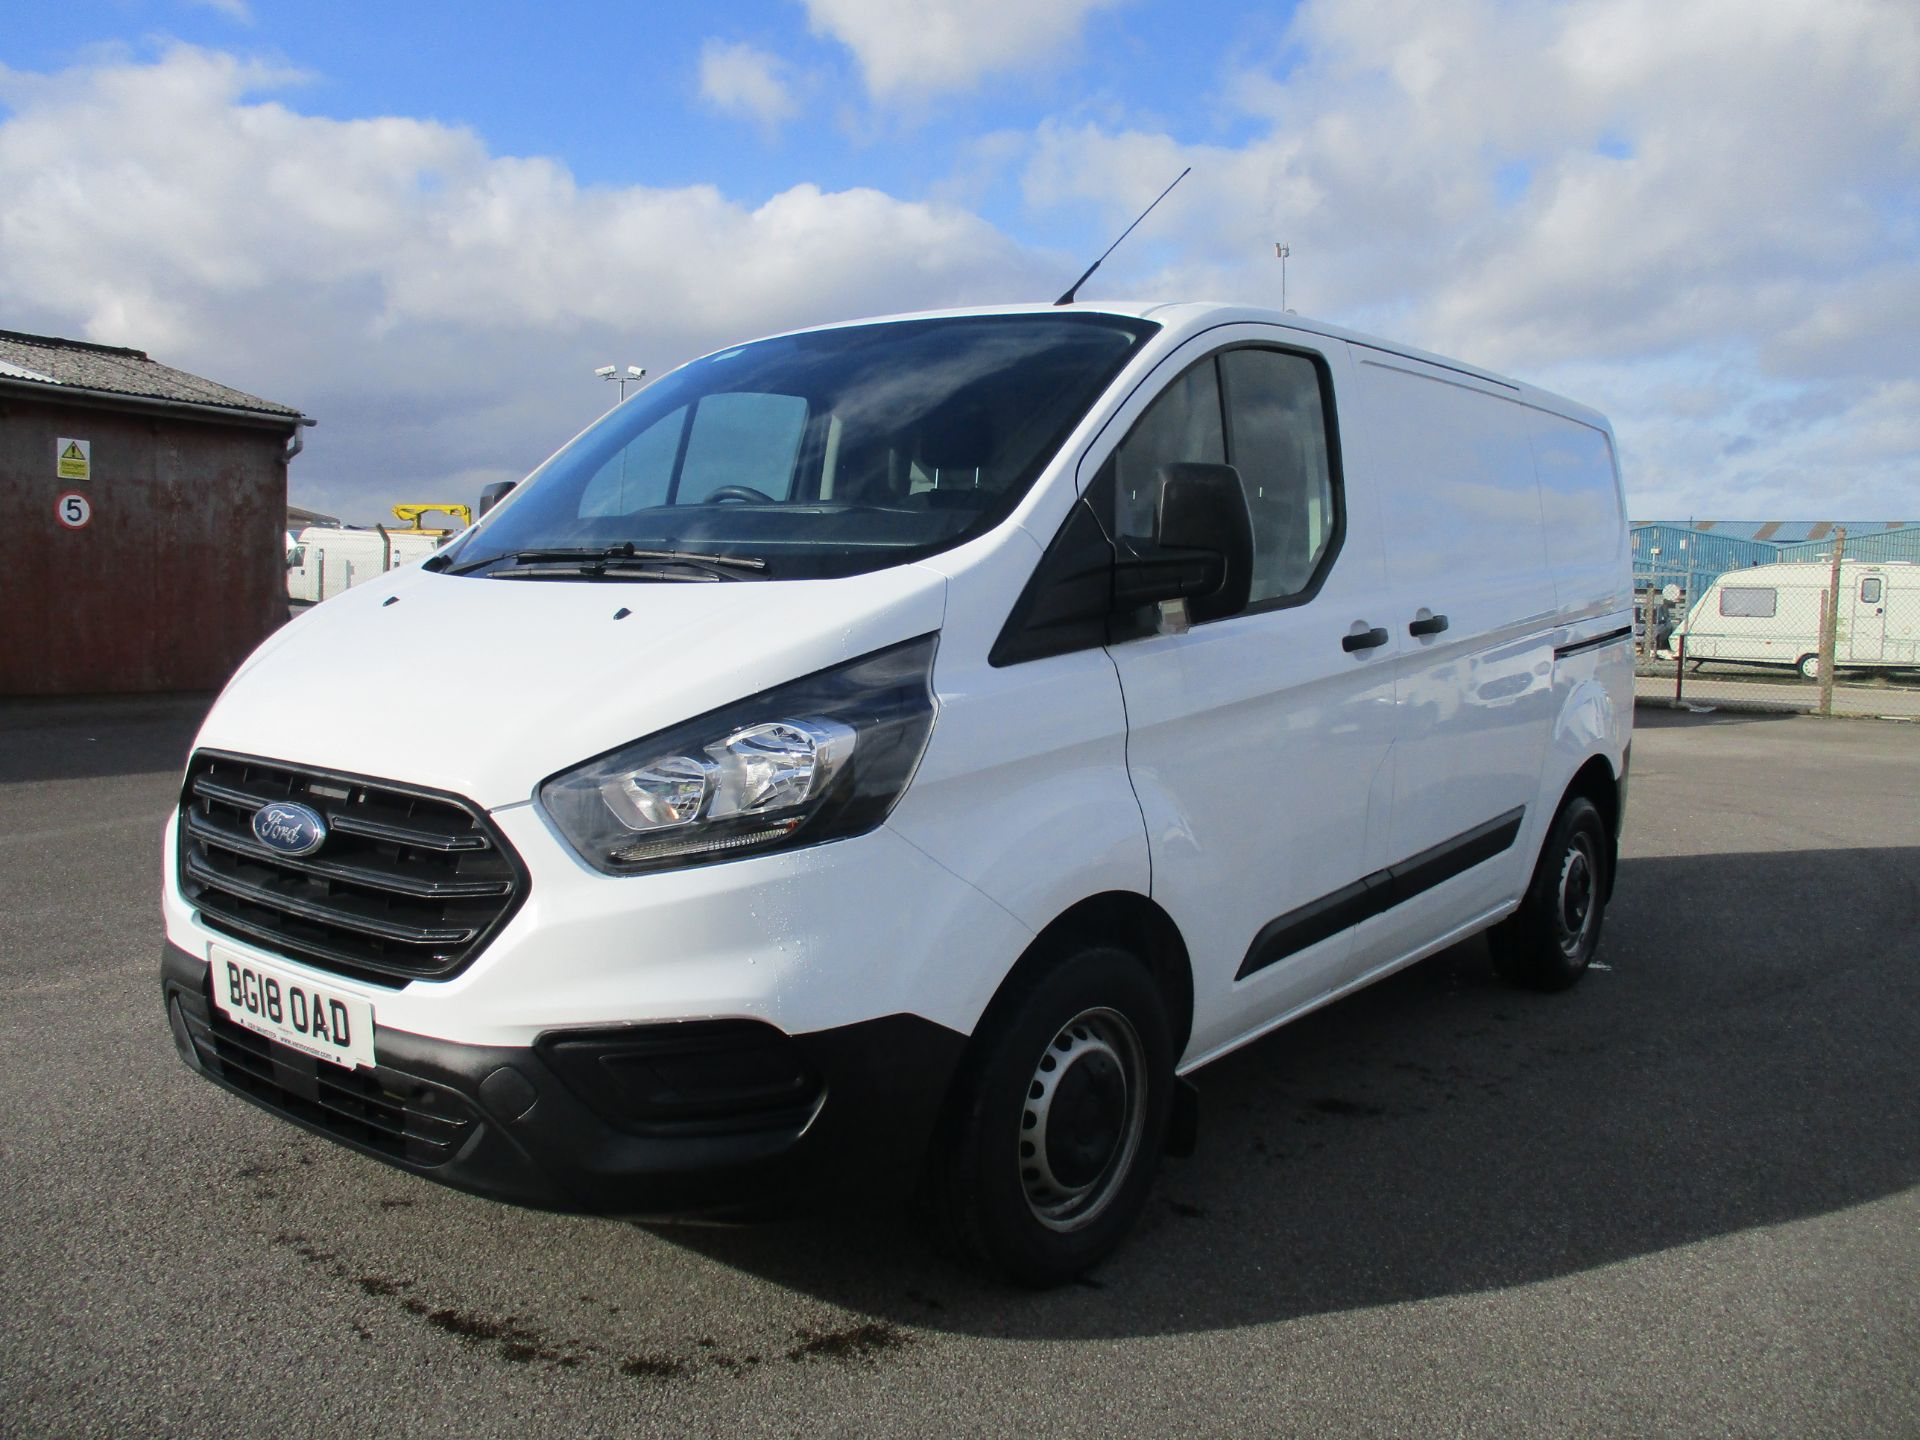 2018 Ford Transit Custom 300 L1 DIESEL FWD 2.0 TDCI 105PS LOW ROOF VAN EURO 6 (BG18OAD) Thumbnail 3